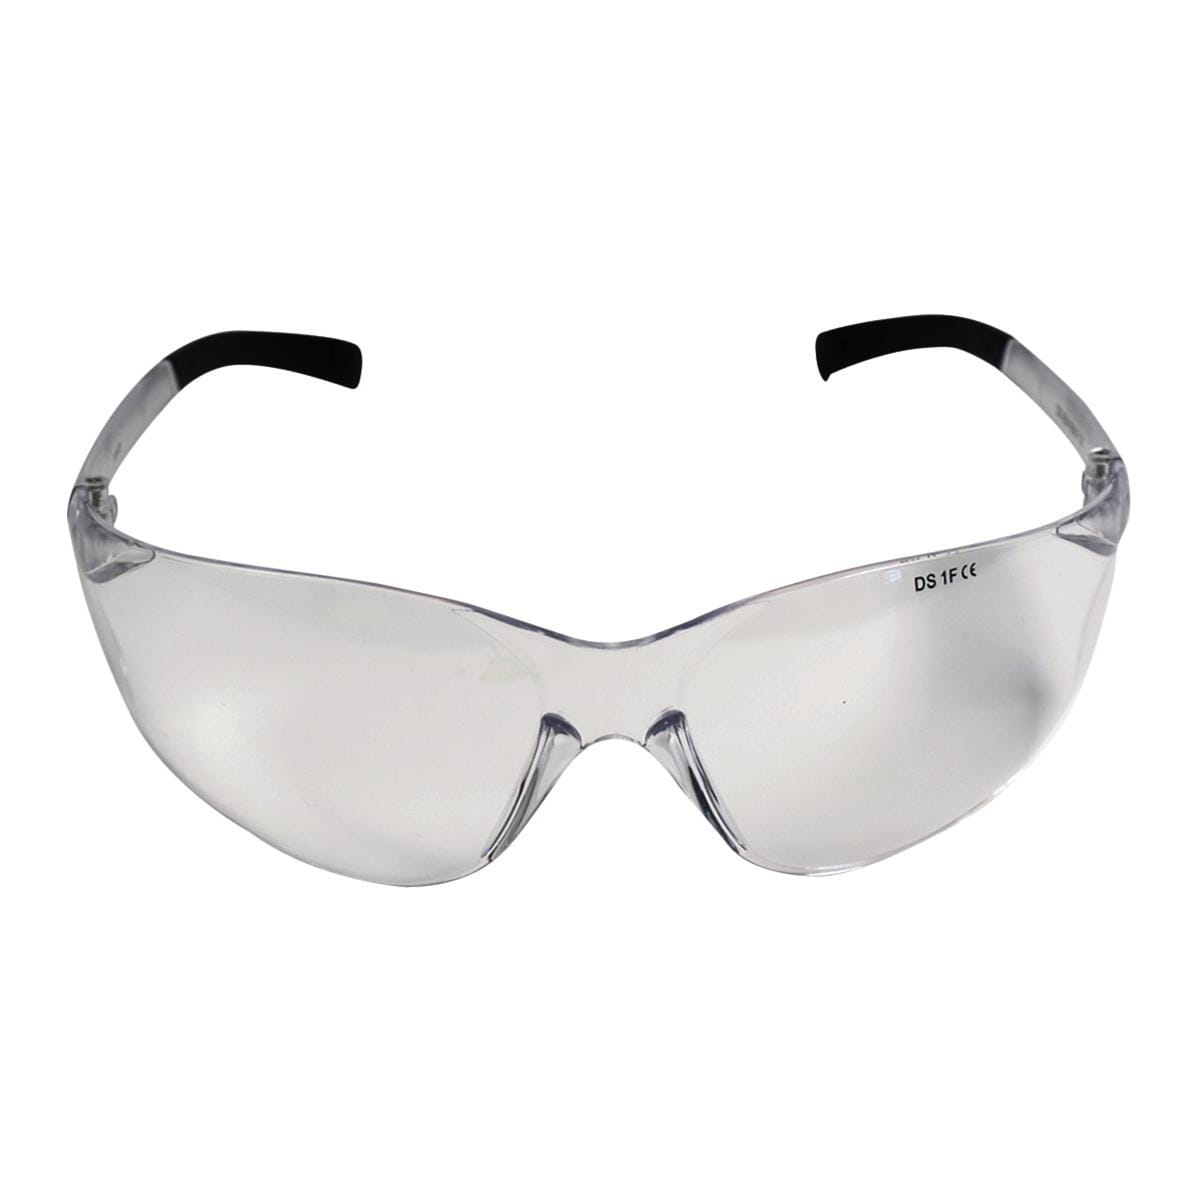 Antifog Clear Safety Glasses